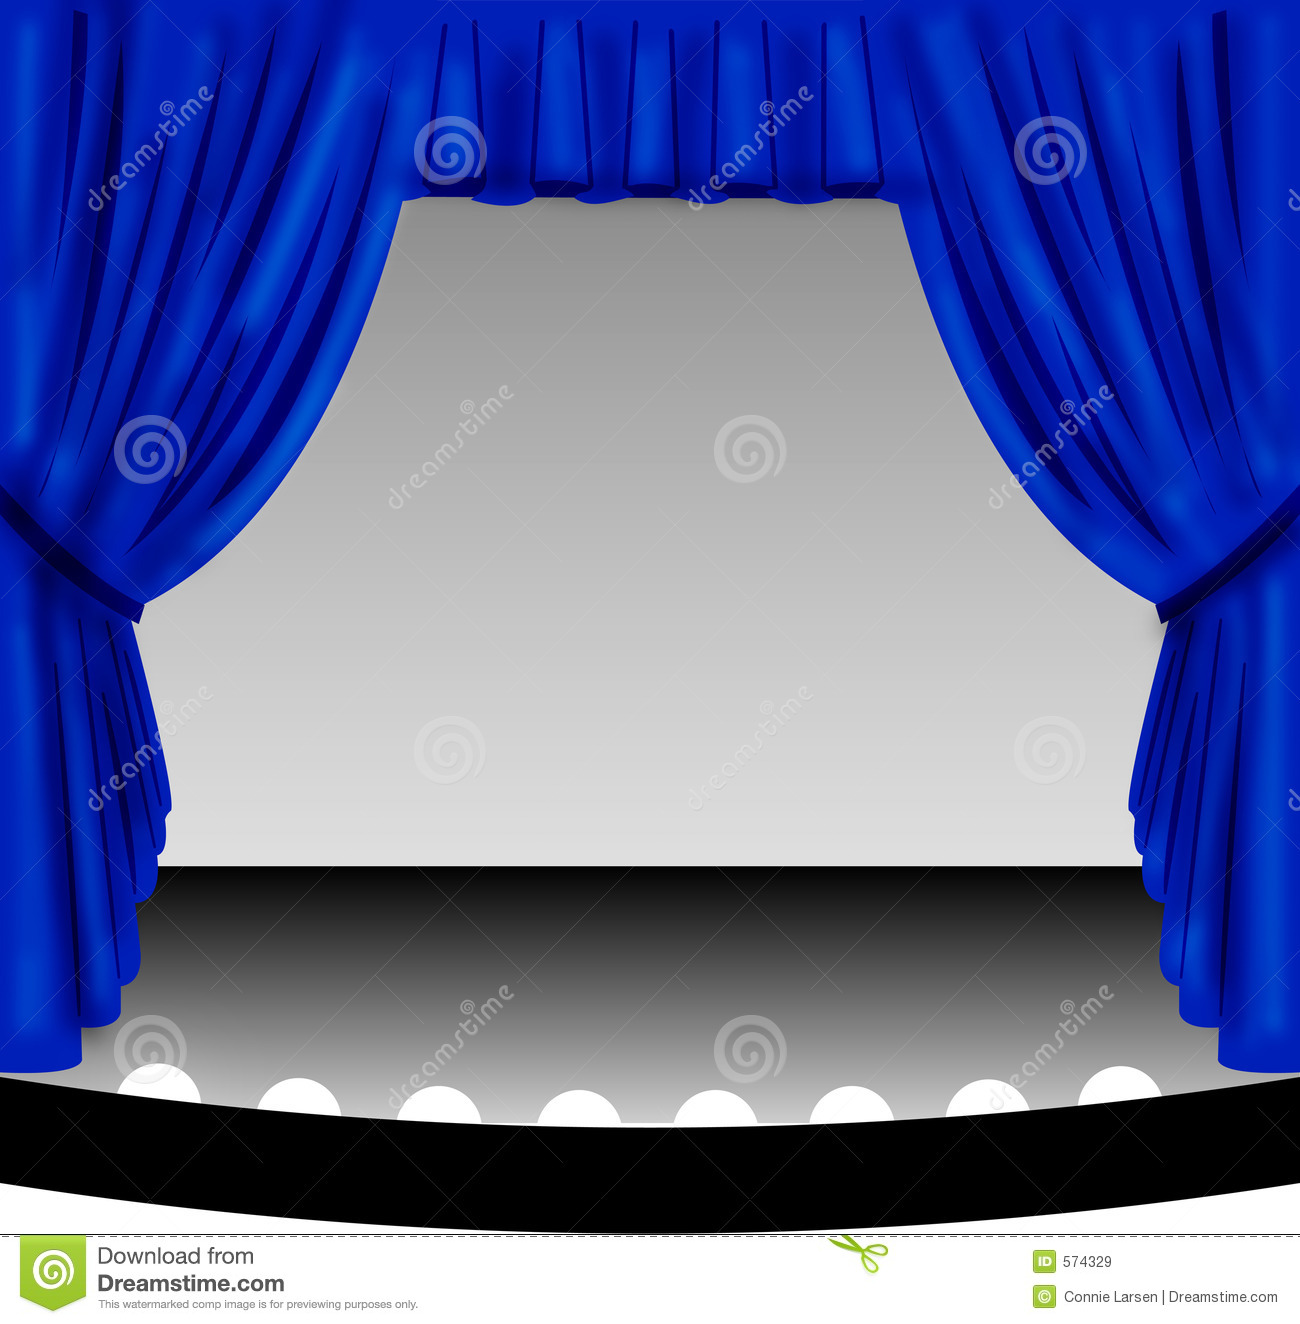 Pics photos theatre curtain red gold black background - Blue Stage Curtain Royalty Free Stock Images Image 574329